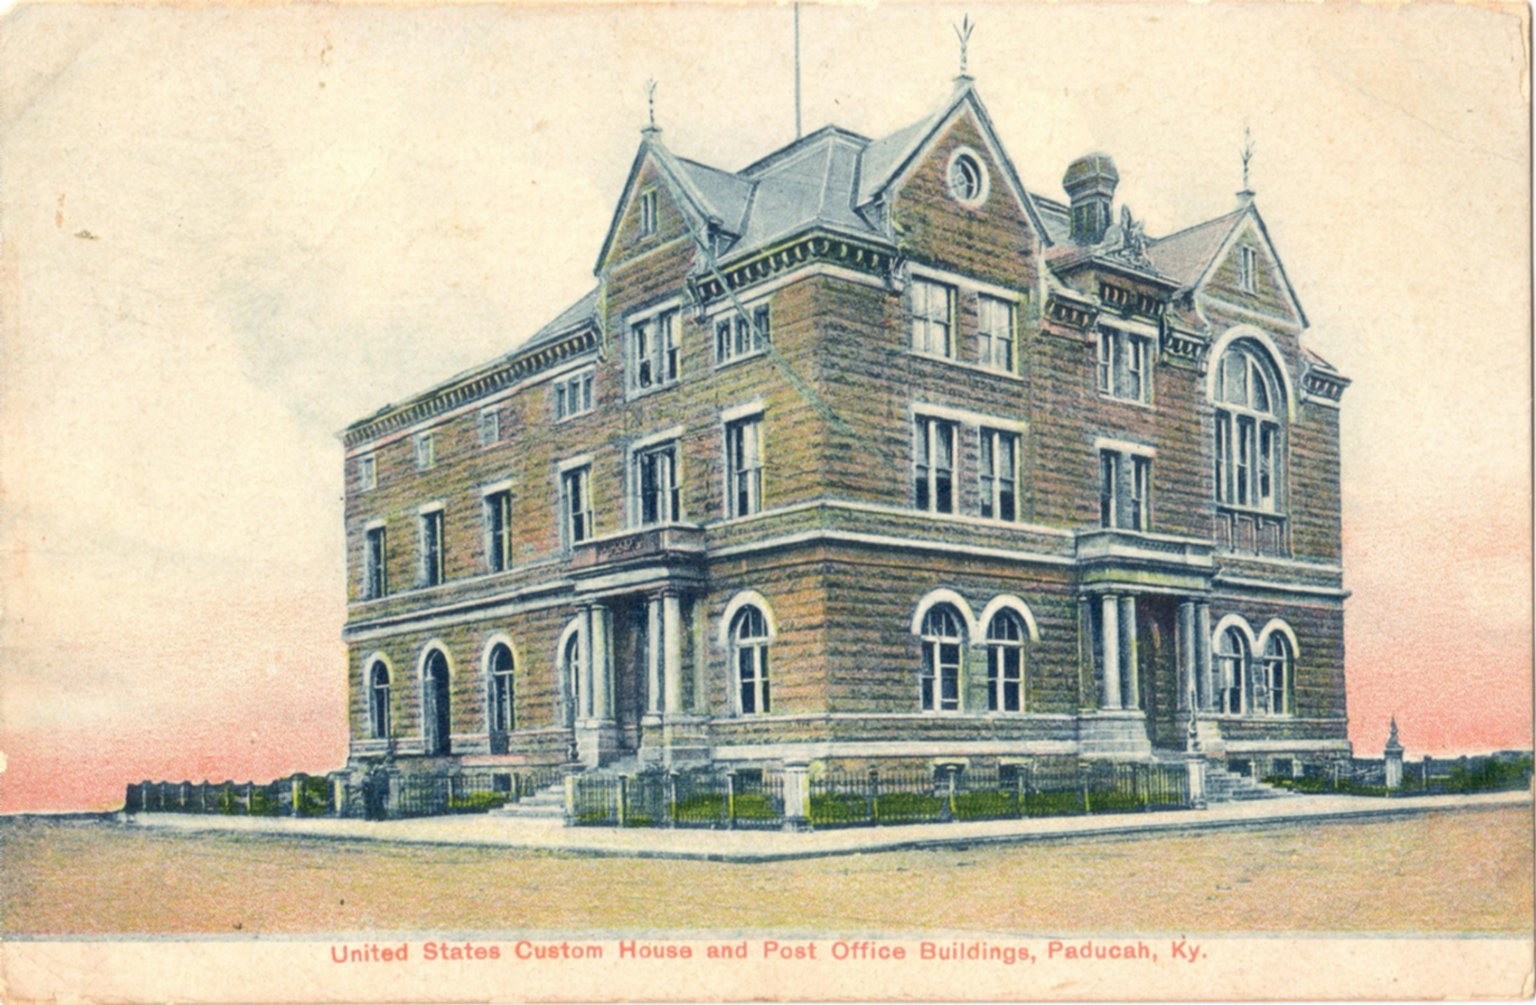 United States Custom, House and Post Office Buildings, Paducah, Ky.